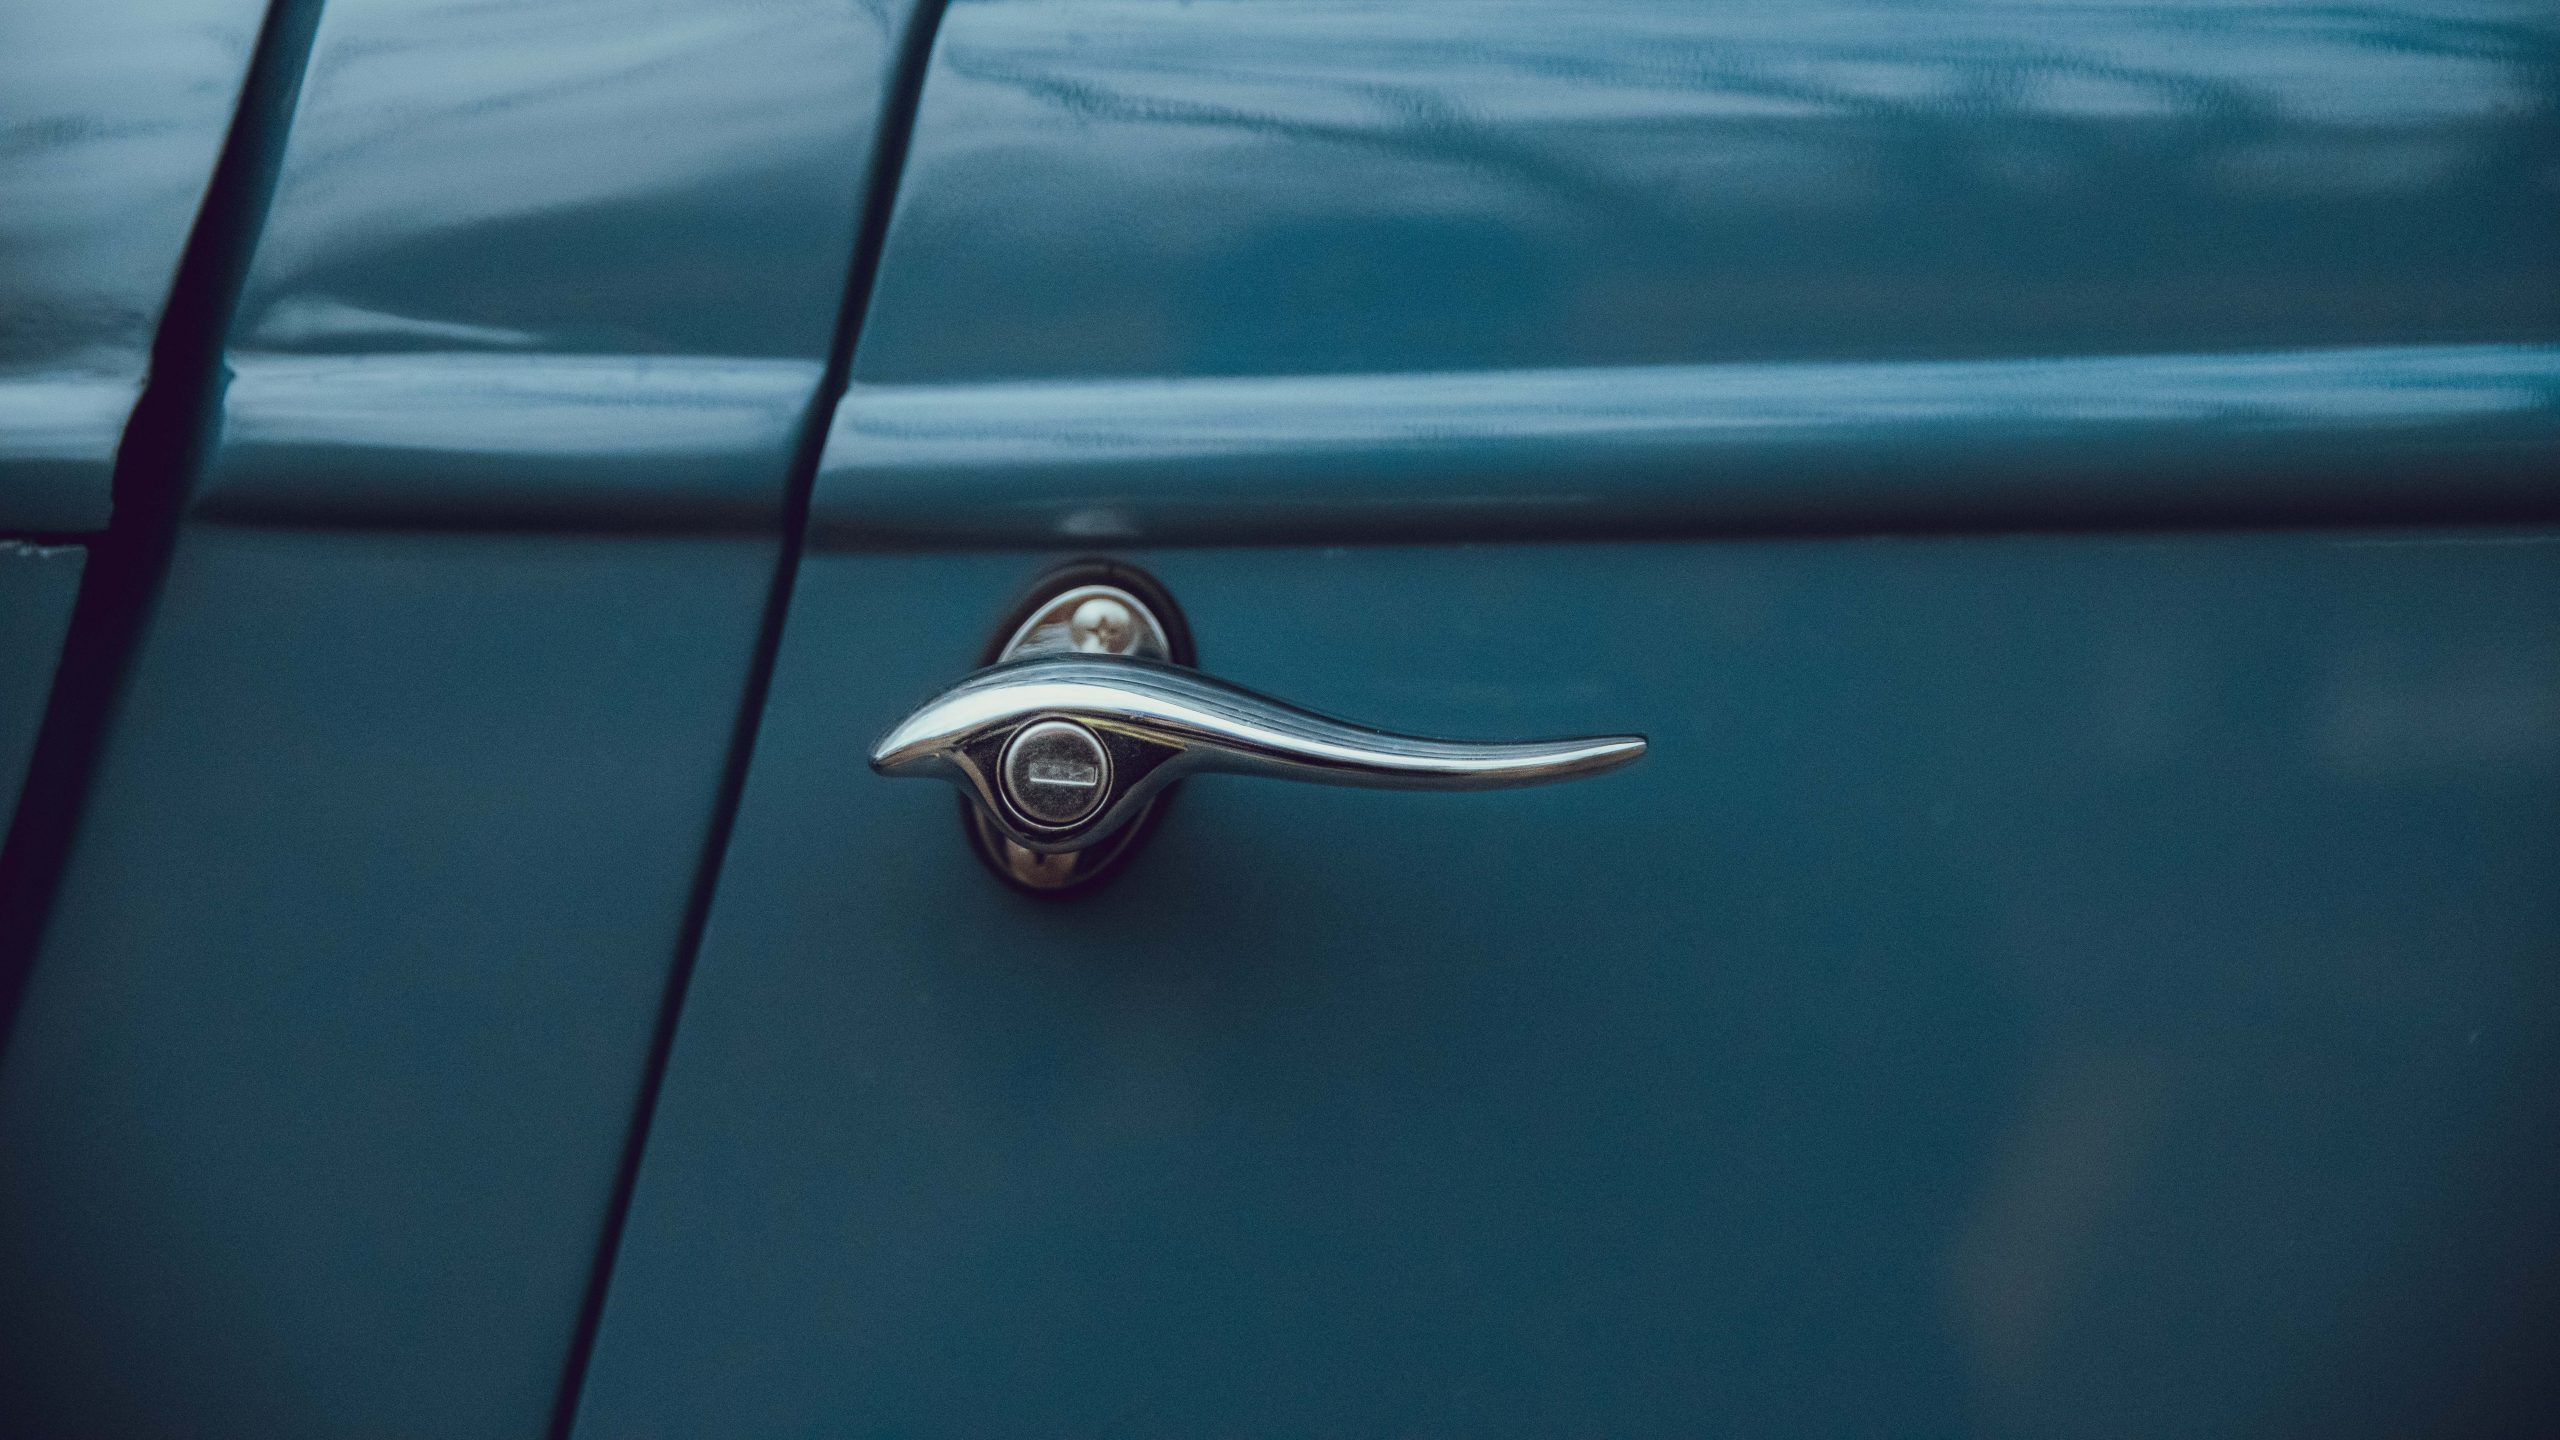 1933 Ford Coupe door handle detail